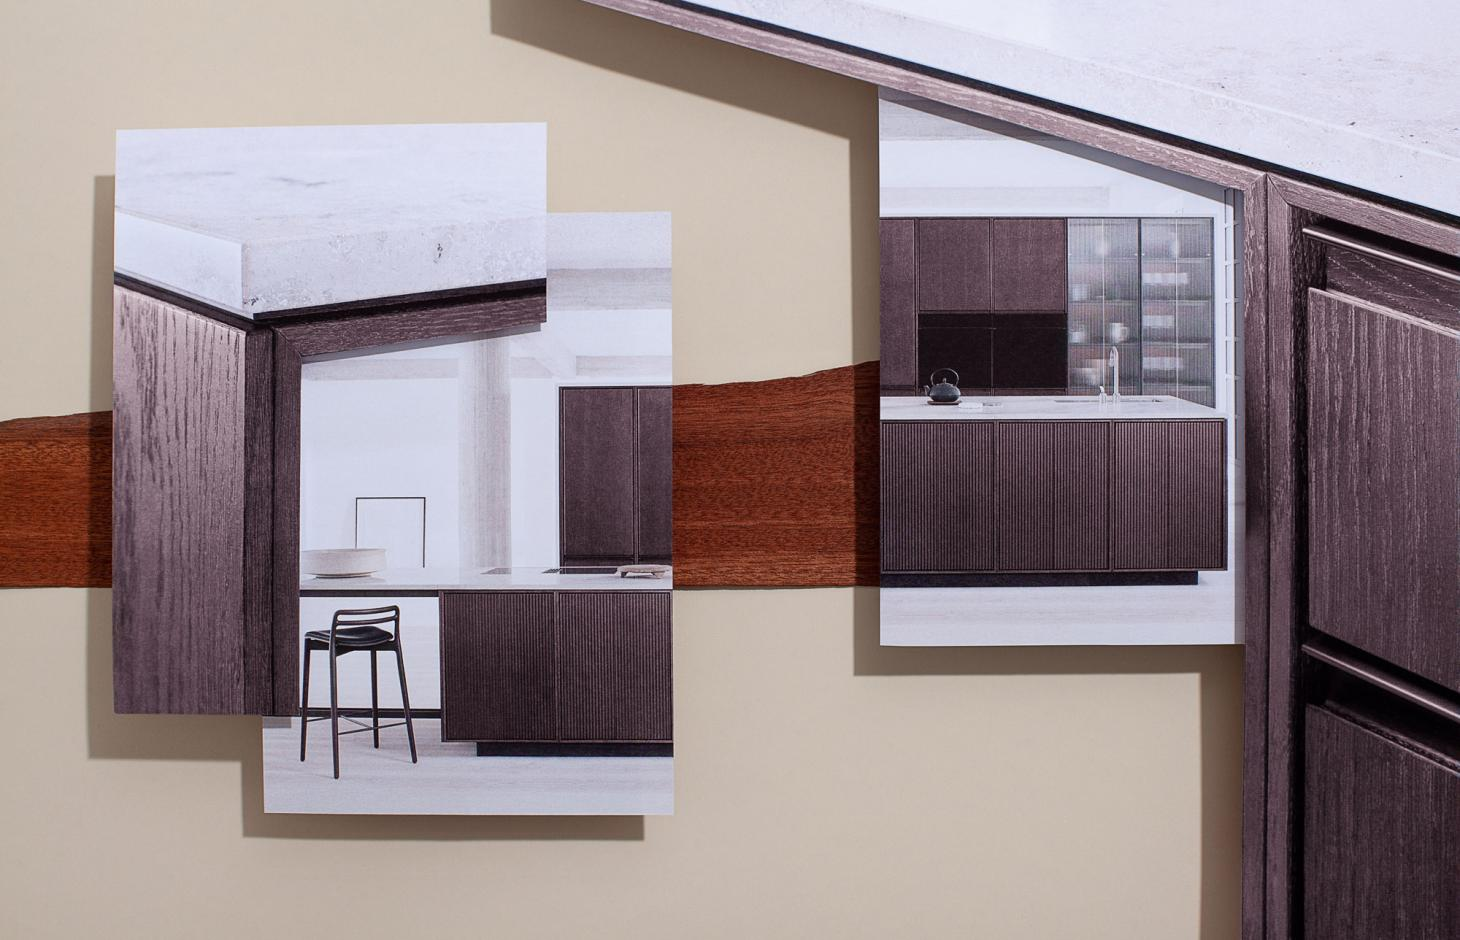 A collage of layered images showing the V2 kitchen by Vipp, featuring wooden ridged cupboard fronts